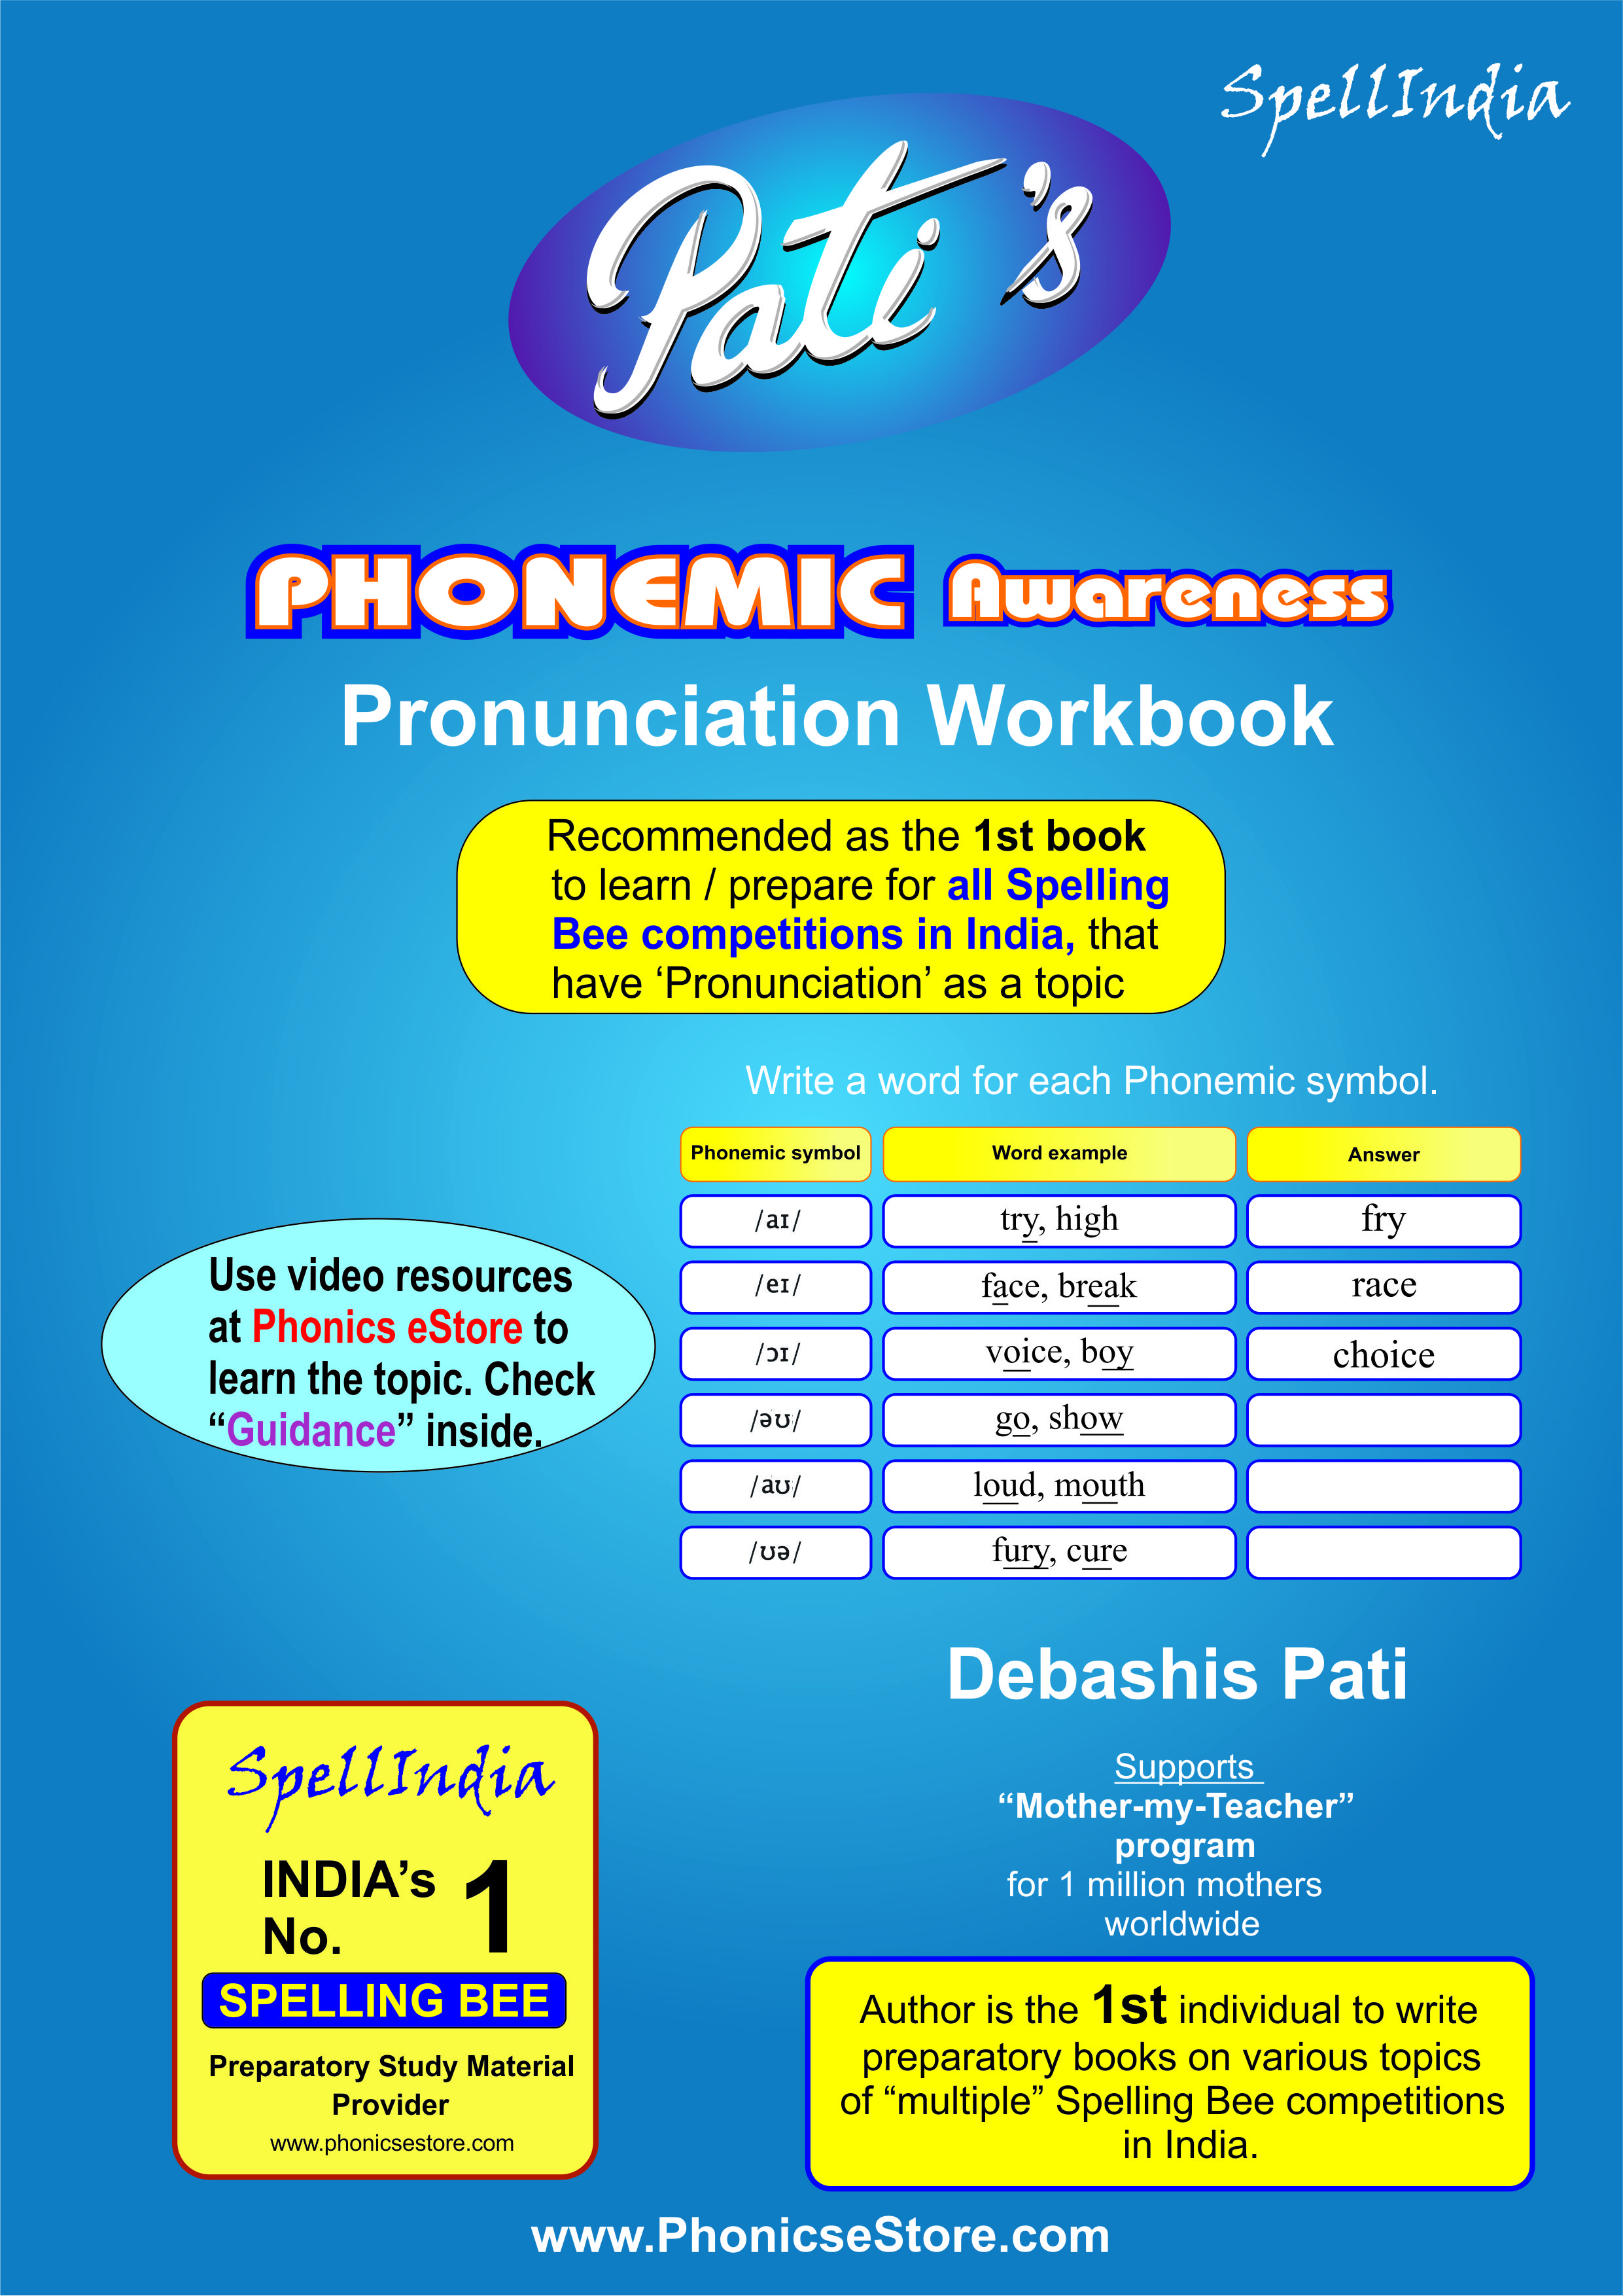 marrs spell bee pronunciation book